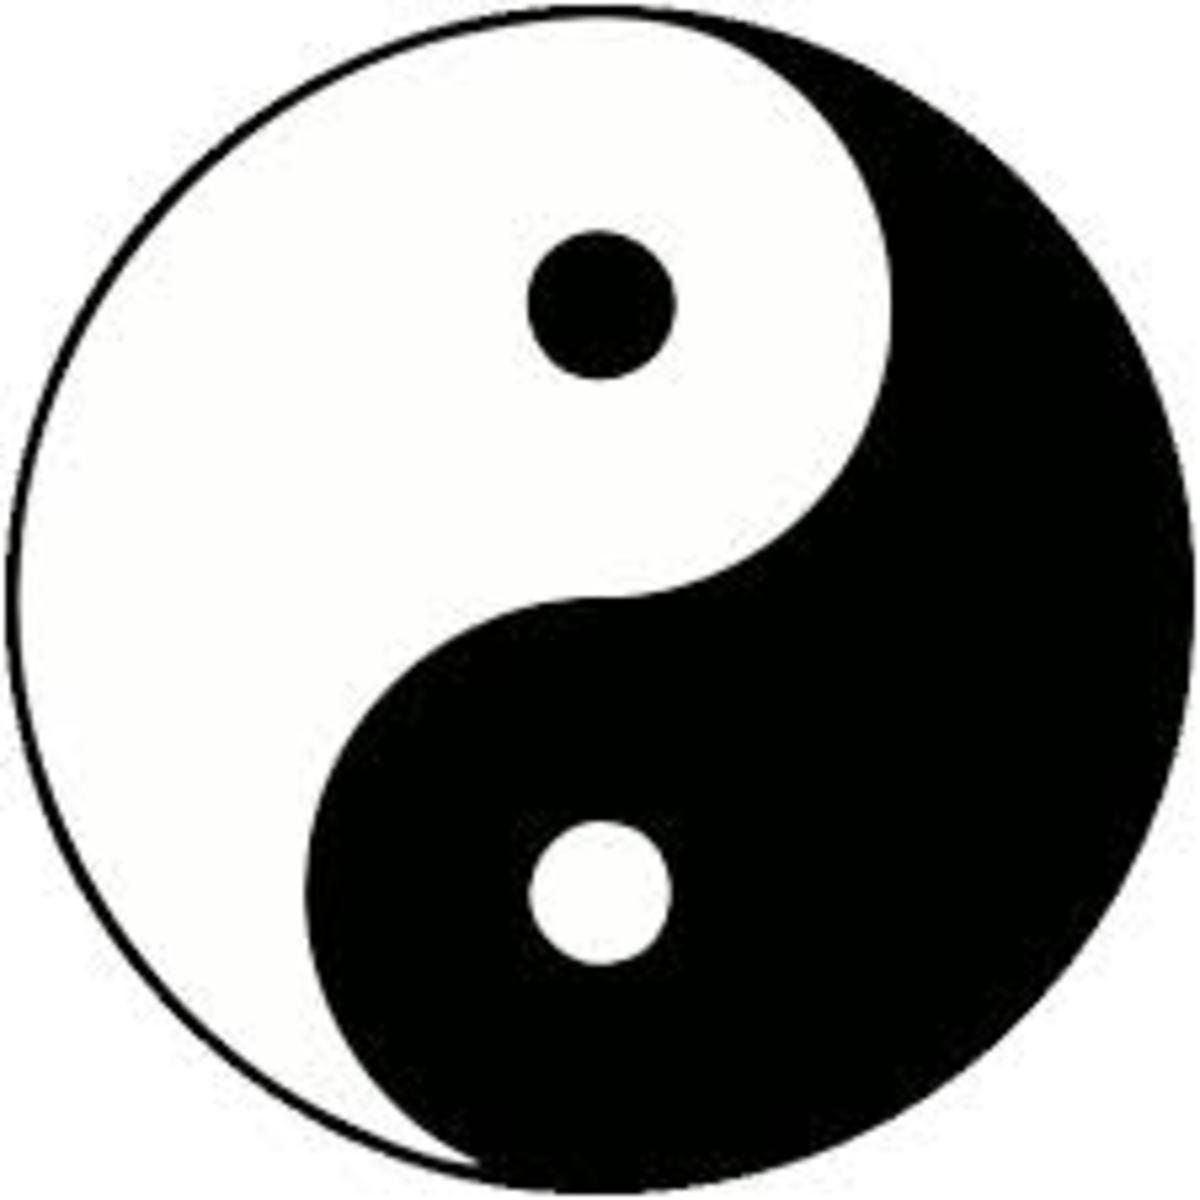 Dark and light are primodial opposites. They are also EXACT opposites. Opposites exist in the natural and human world. For everything, there is always a polar opposite.  Opposites are necessary, if not integral, components of life.